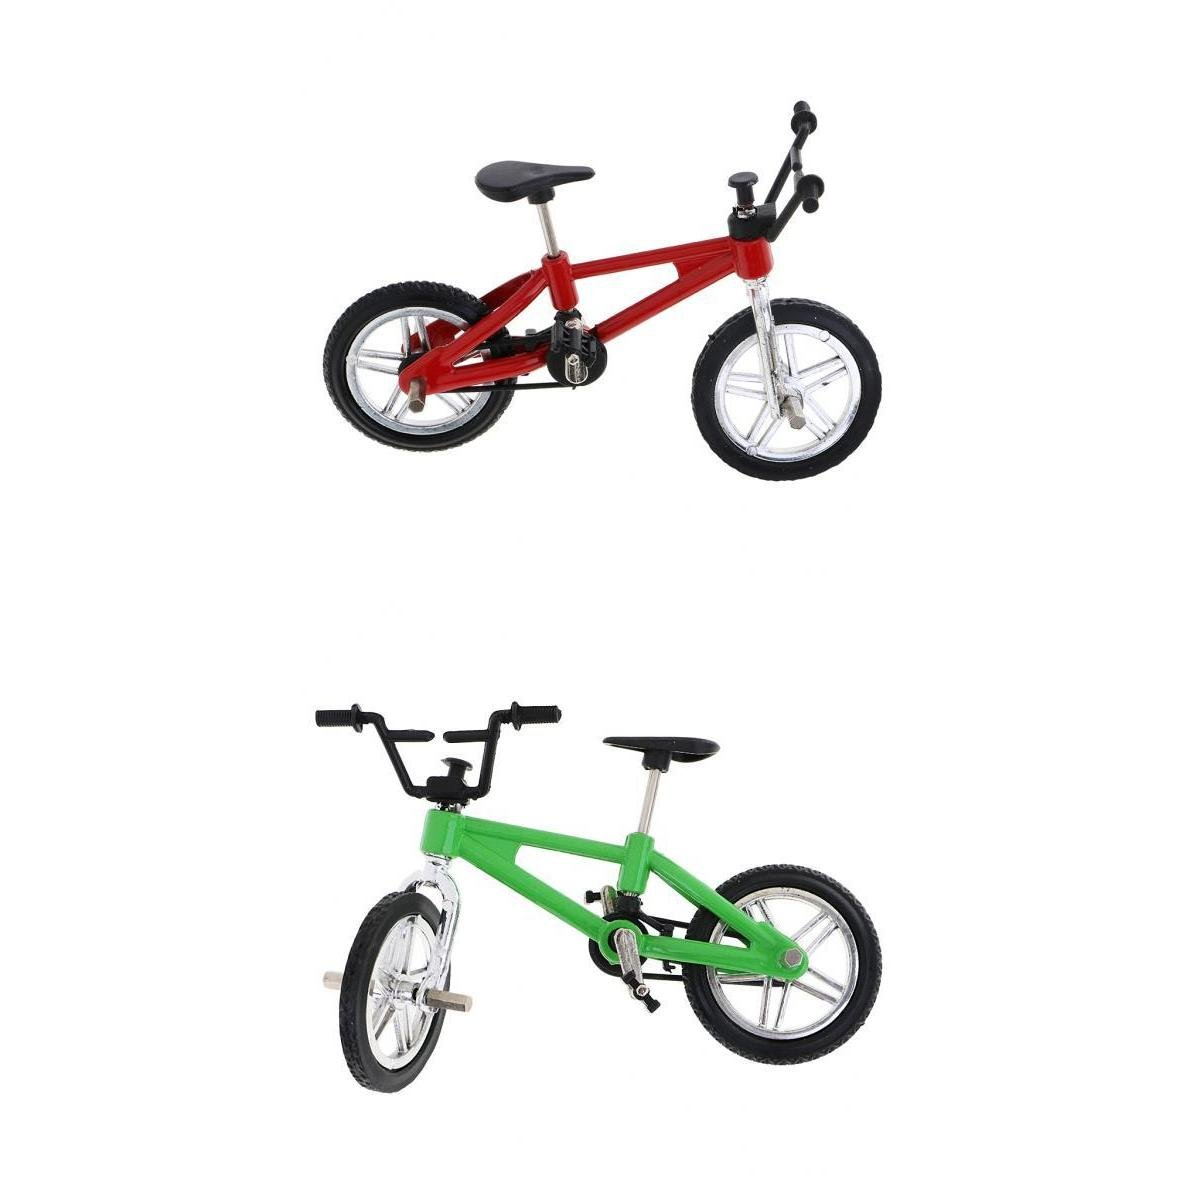 MagiDeal 2x Mini Alloy Finger Bike Model Mountain Bike Bicycle Toy Collectible Gift STK0119398513